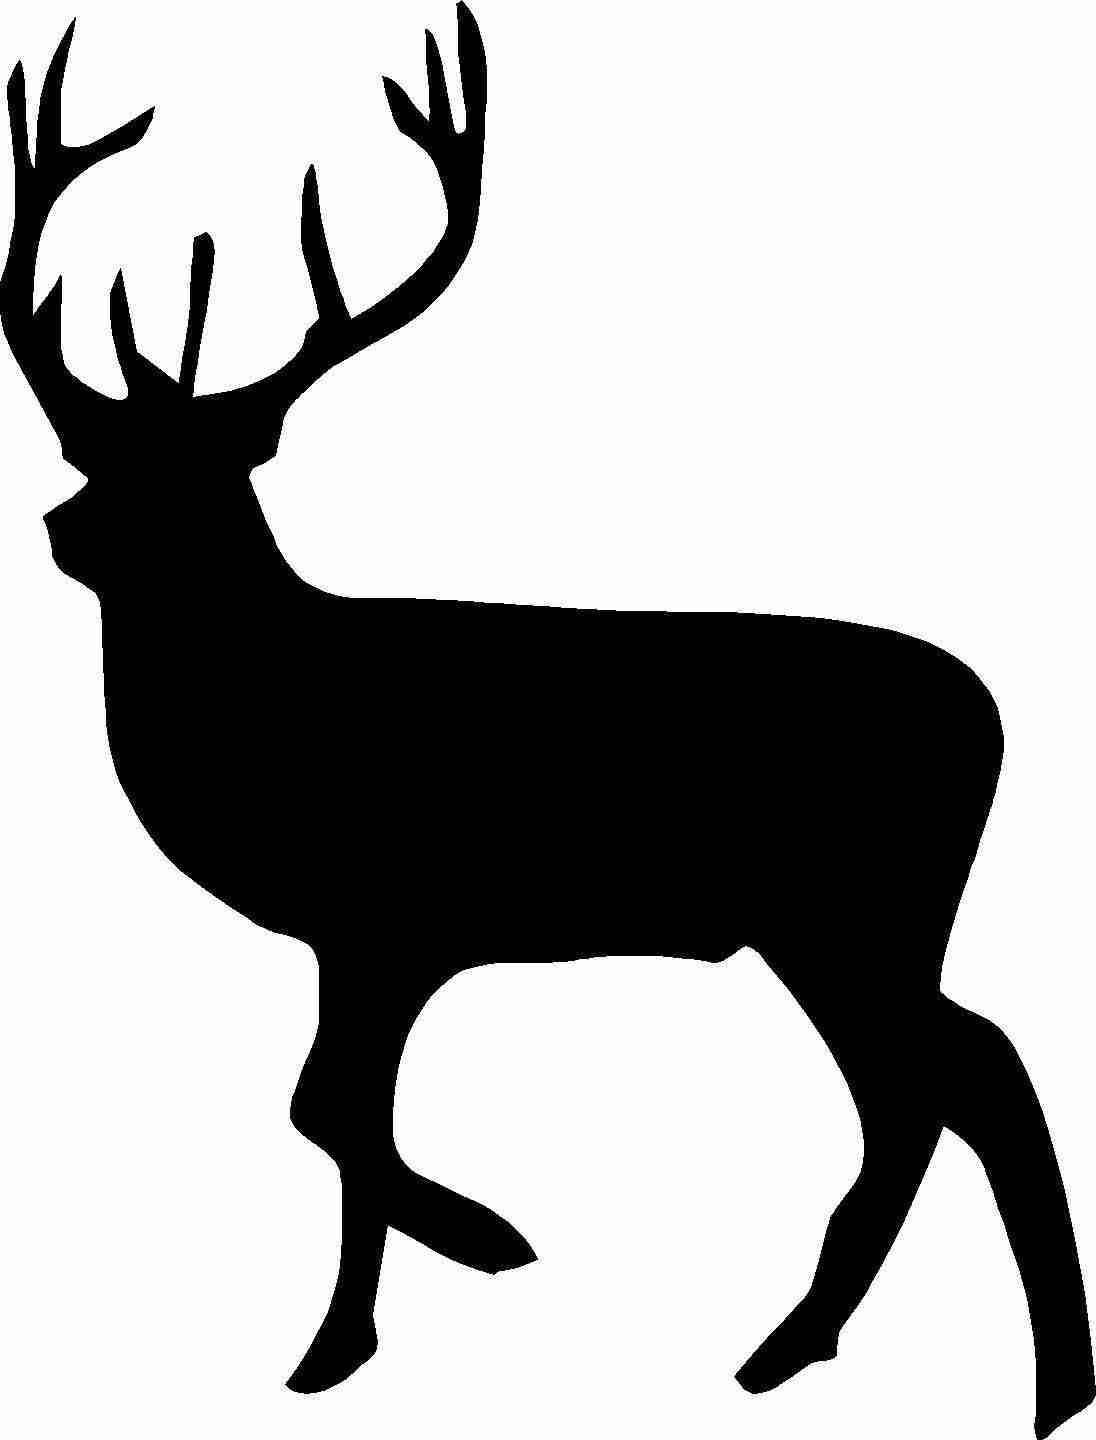 1096x1440 Best 15 Deer Silhouette Clip Art Whitetail Images Brilliant